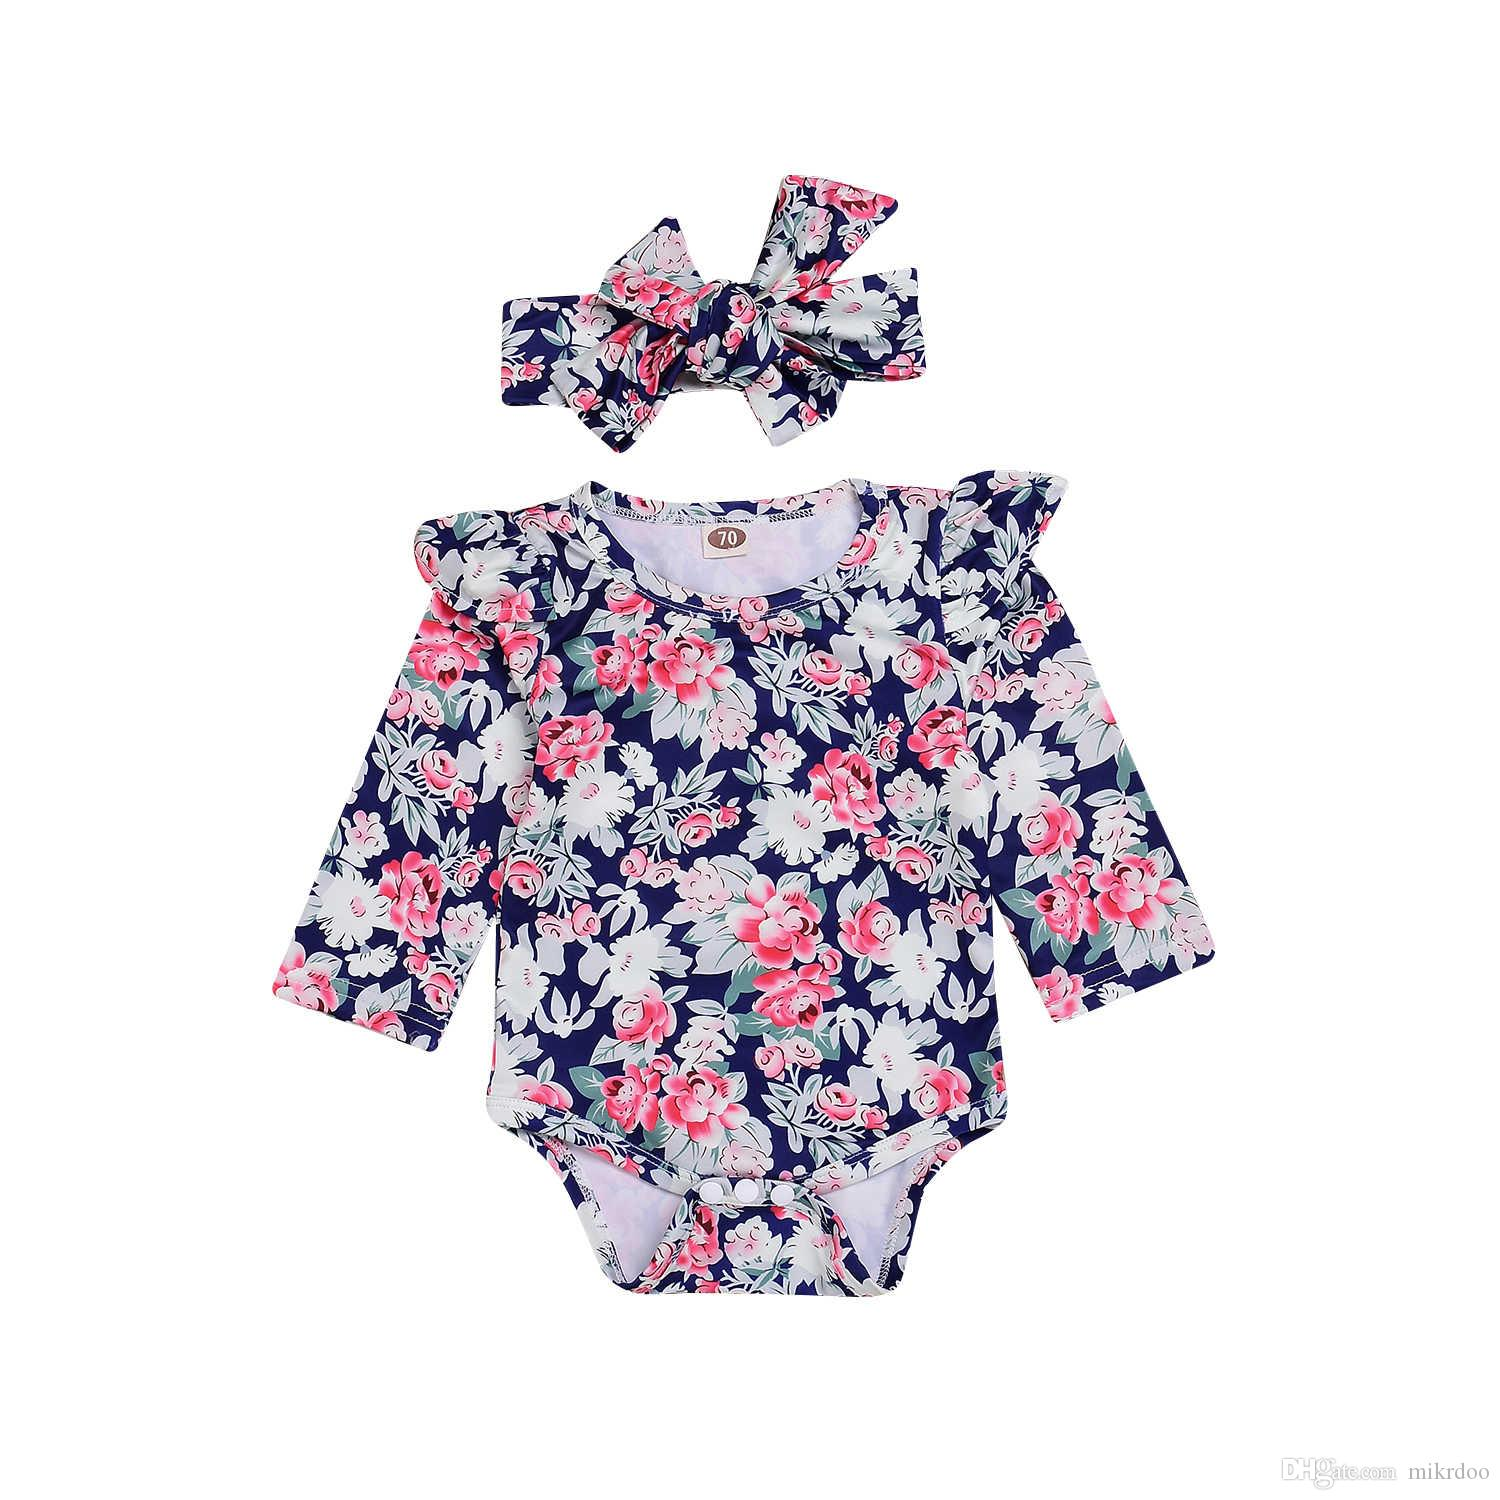 440e98b5e92e 2019 Mikrdoo Cute Newborn Baby Girl Floral Romper Jumpsuit Set Long Sleeve  Romper With Headband Kids Clothing Set From Mikrdoo